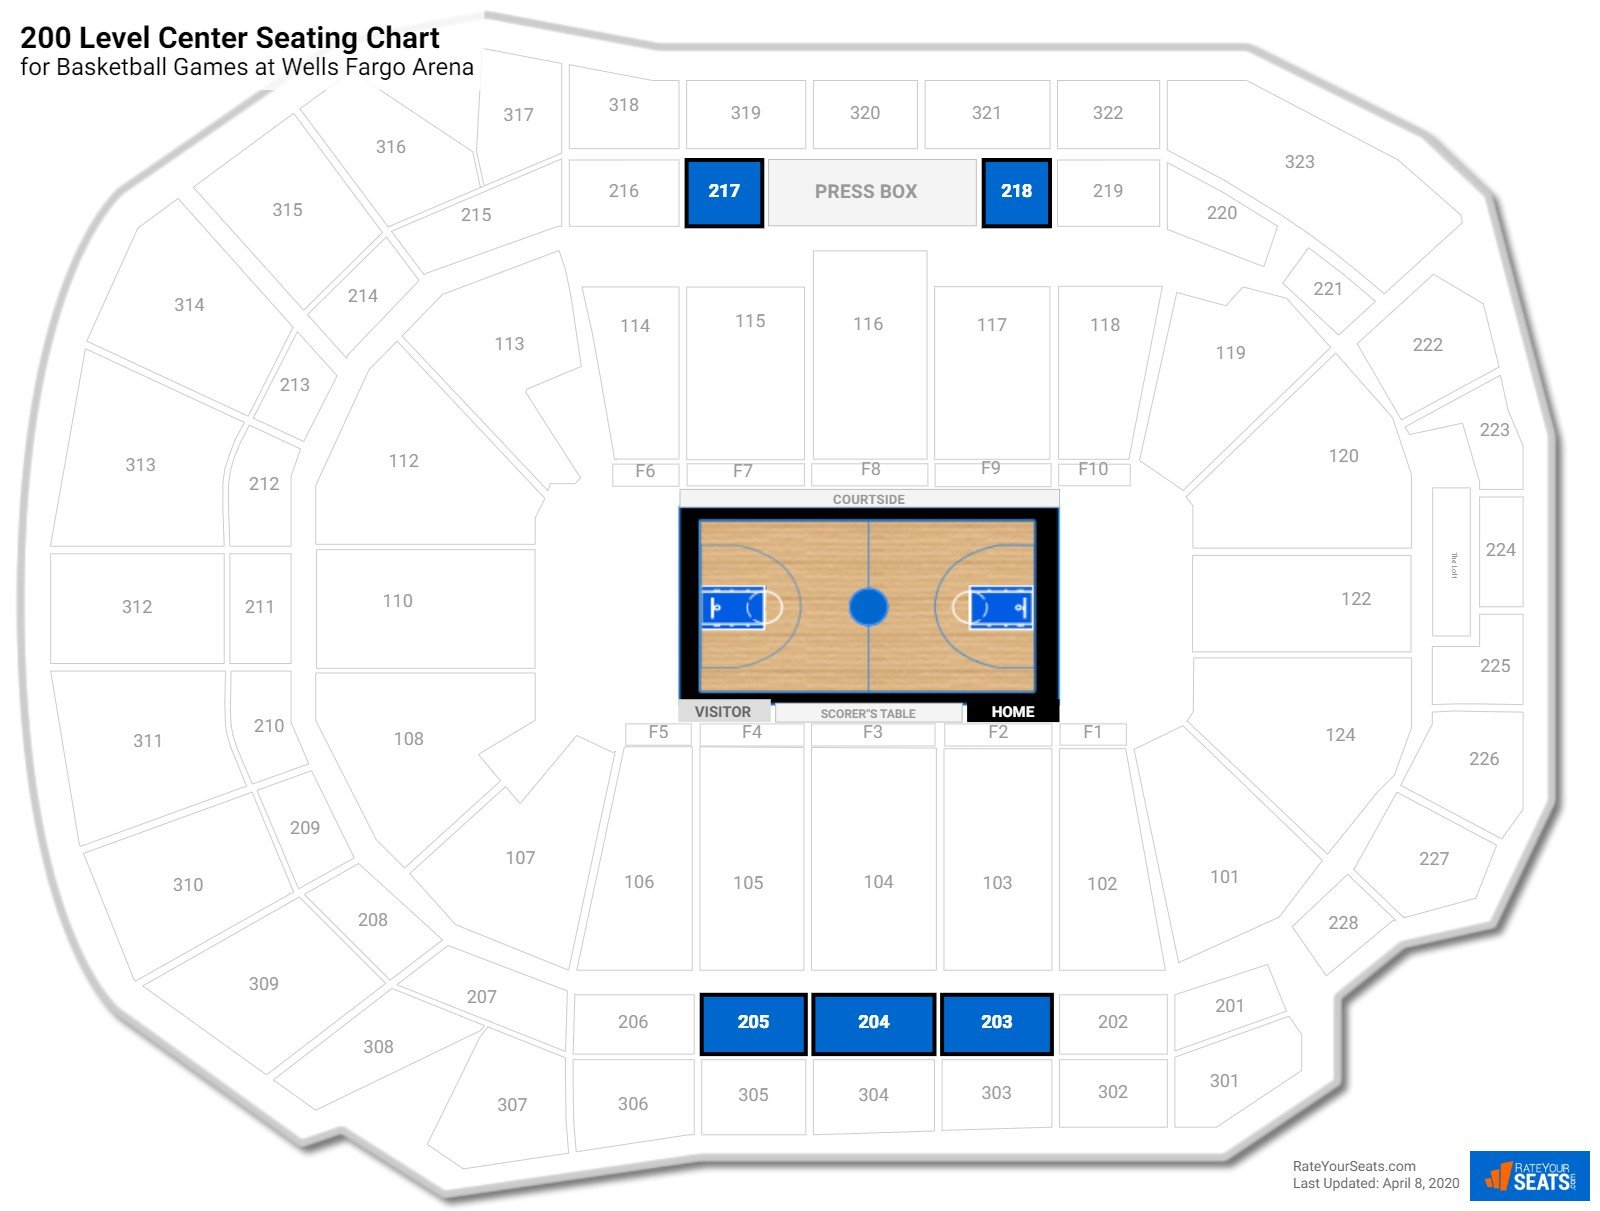 Wells Fargo Arena 200 Level Center seating chart